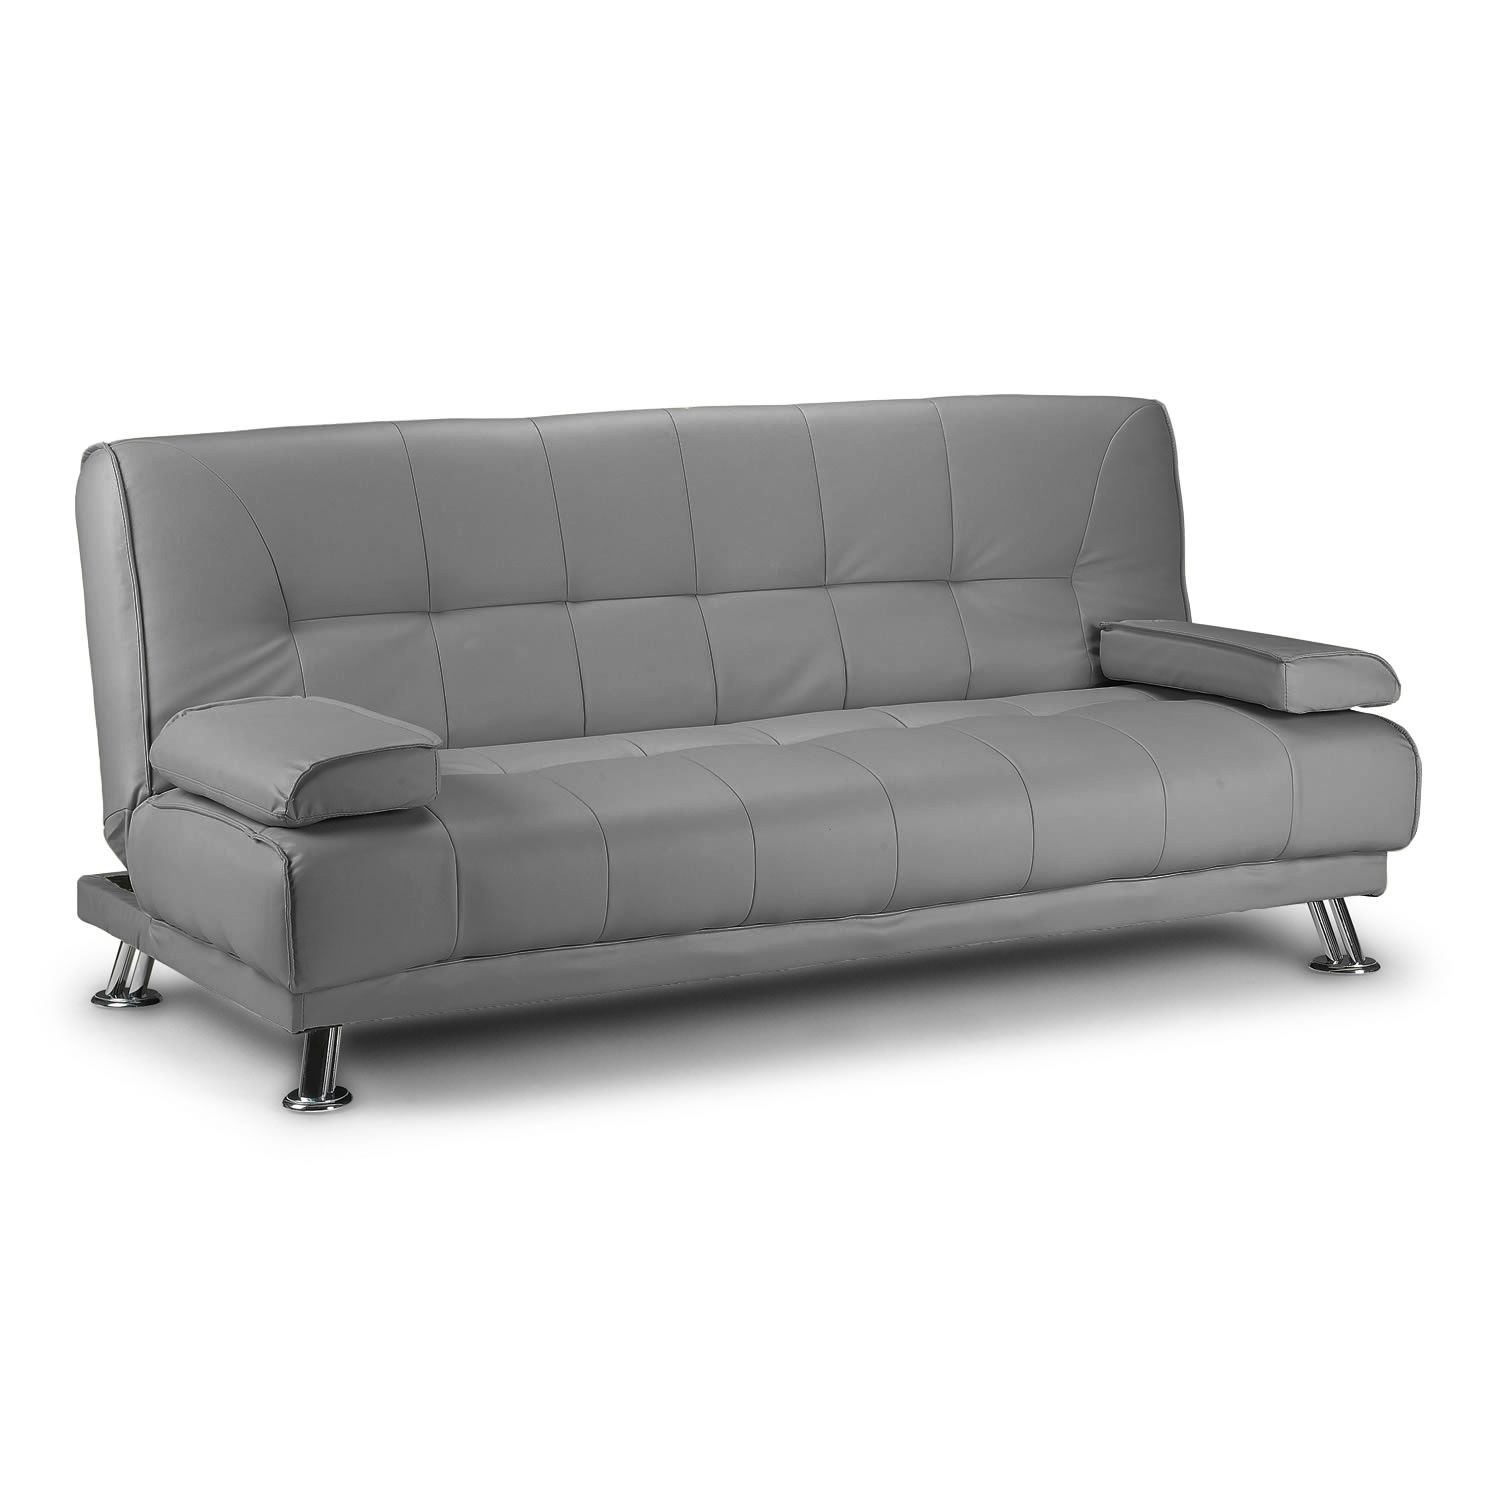 Venice Sofa Bed Next Day Delivery Venice Sofa Bed Home Office  ~ Sofa Bed For Home Office